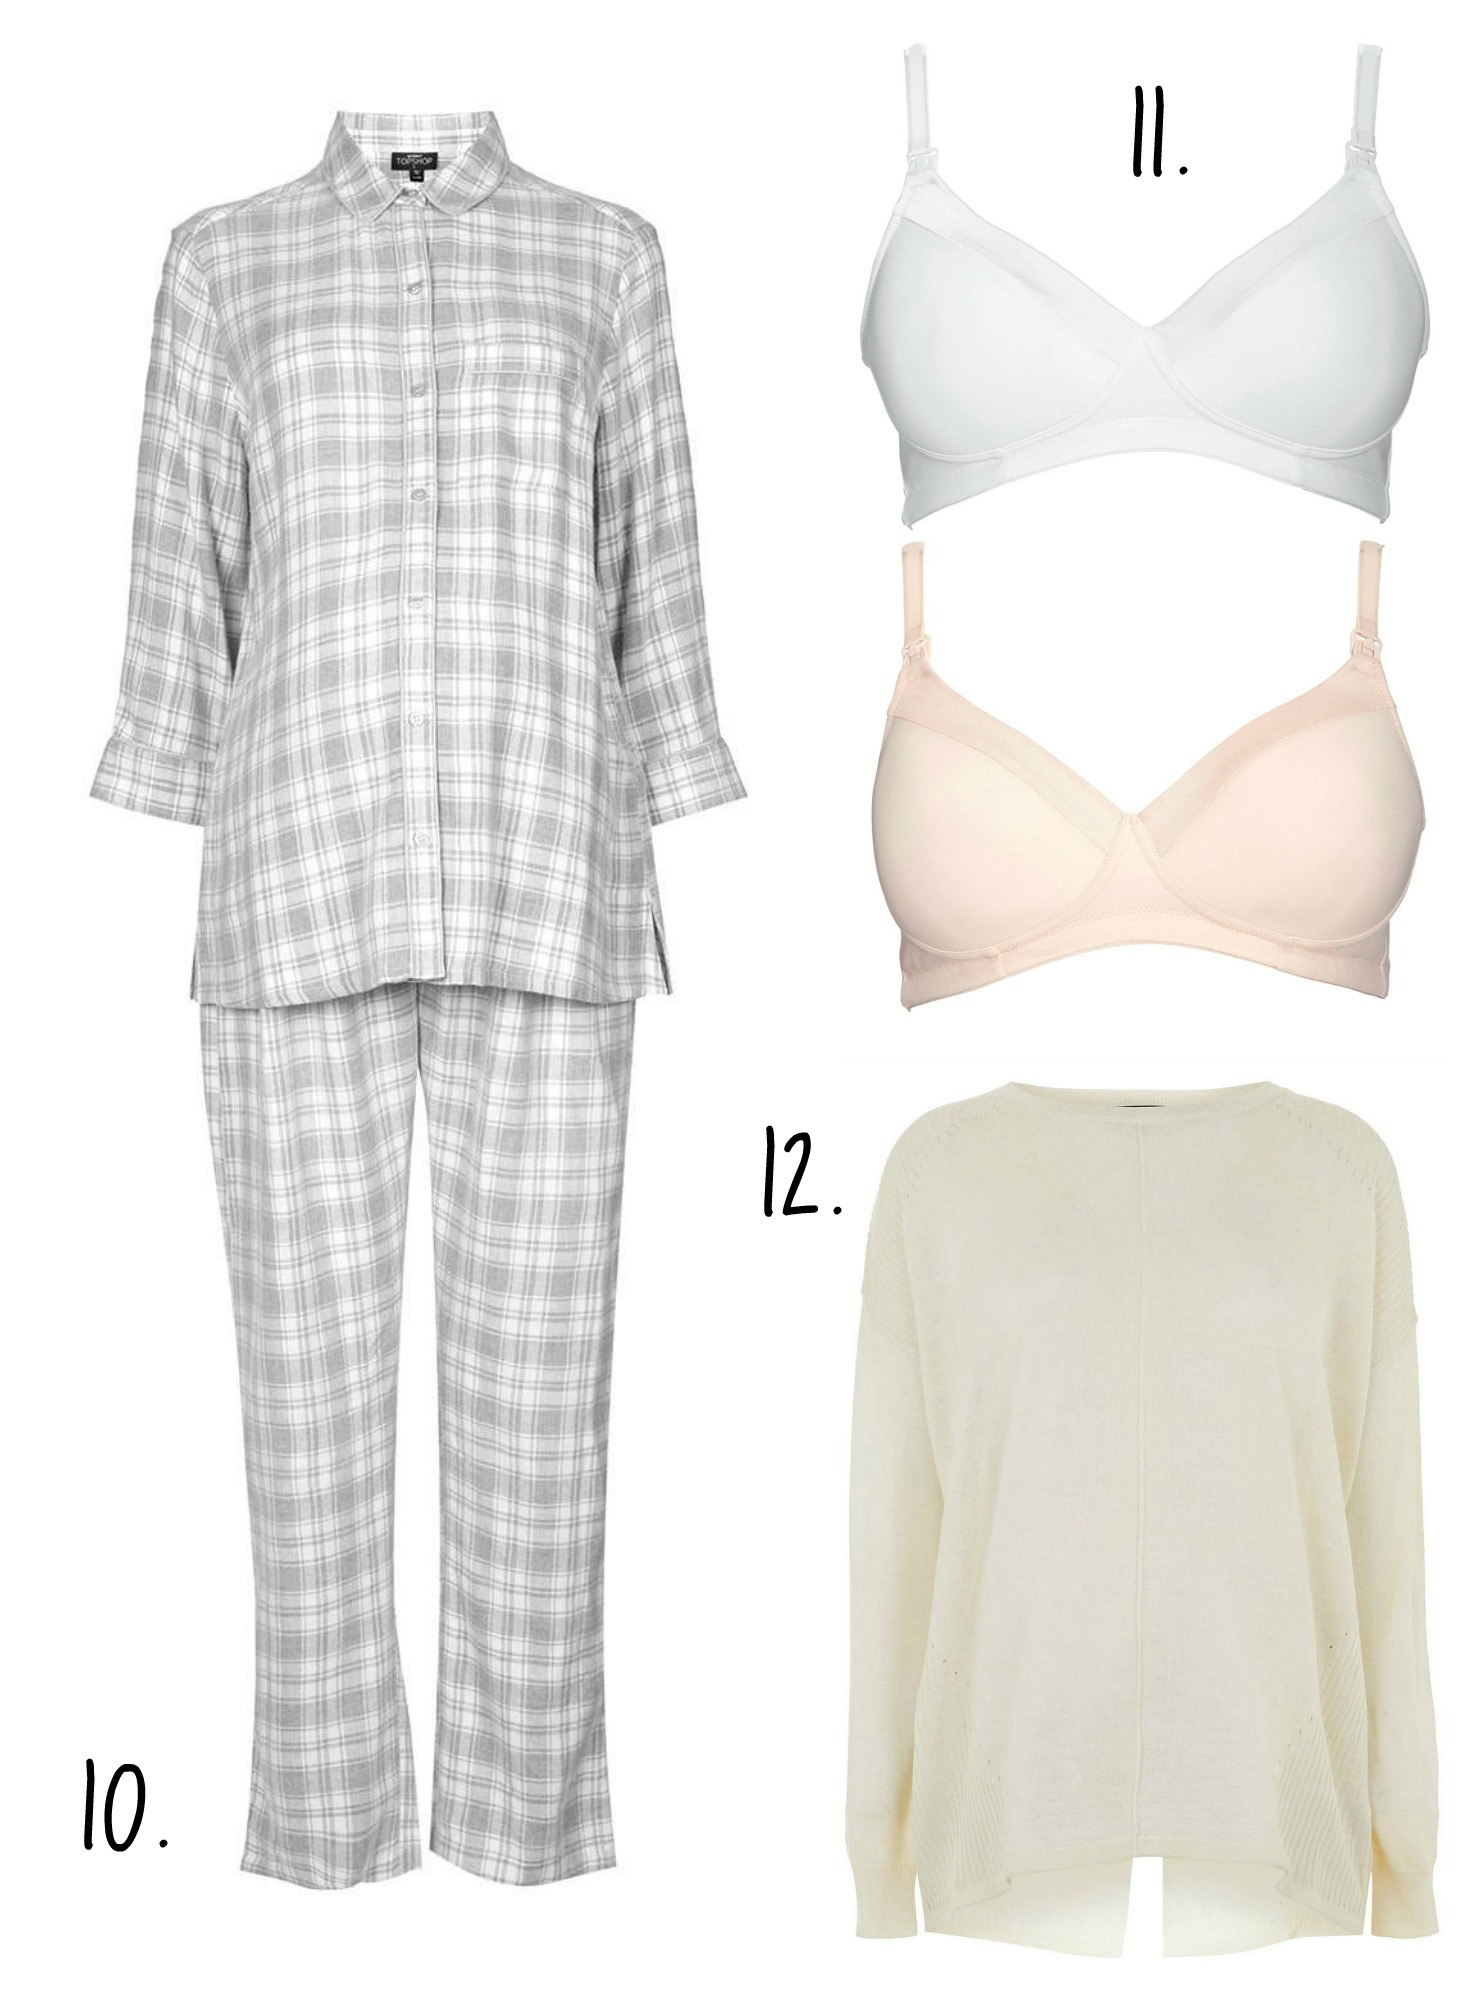 Shop a great selection of Women's Maternity Clothing at Nordstrom Rack. Find designer Women's Maternity Clothing up to 70% off and get free shipping on orders over $